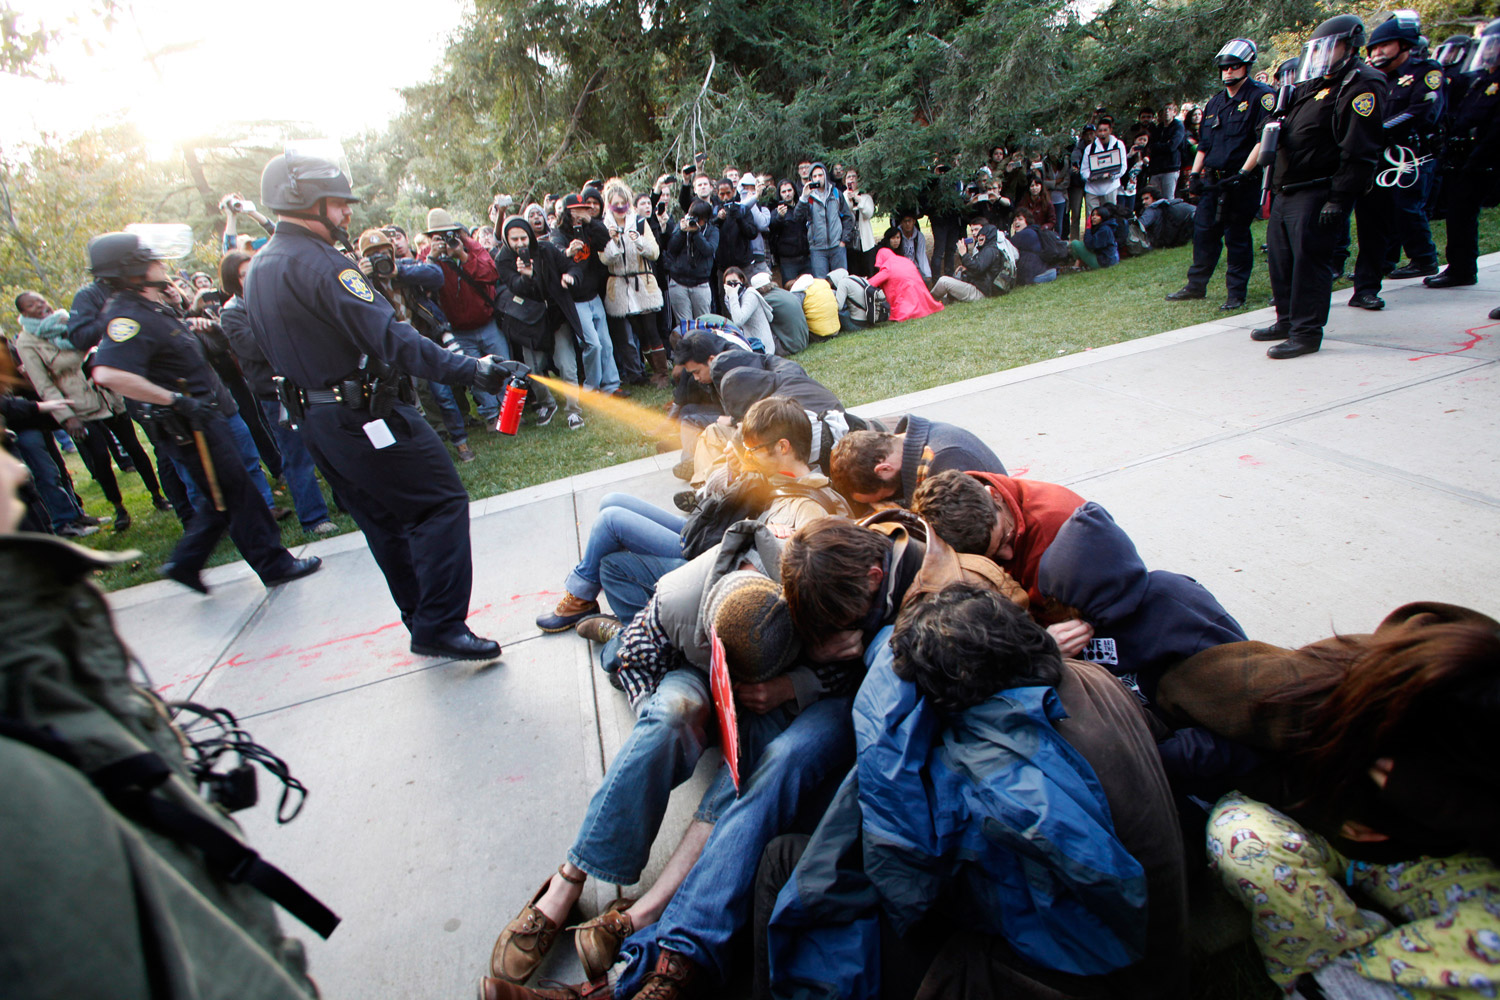 November 18, 2011. In a now infamous act, a University of California at Davis police officer pepper-sprays students protesting in solidarity with Occupy Wall Street. The officer has been placed on administrative leave, and the school's chancellor faces calls for her resignation.